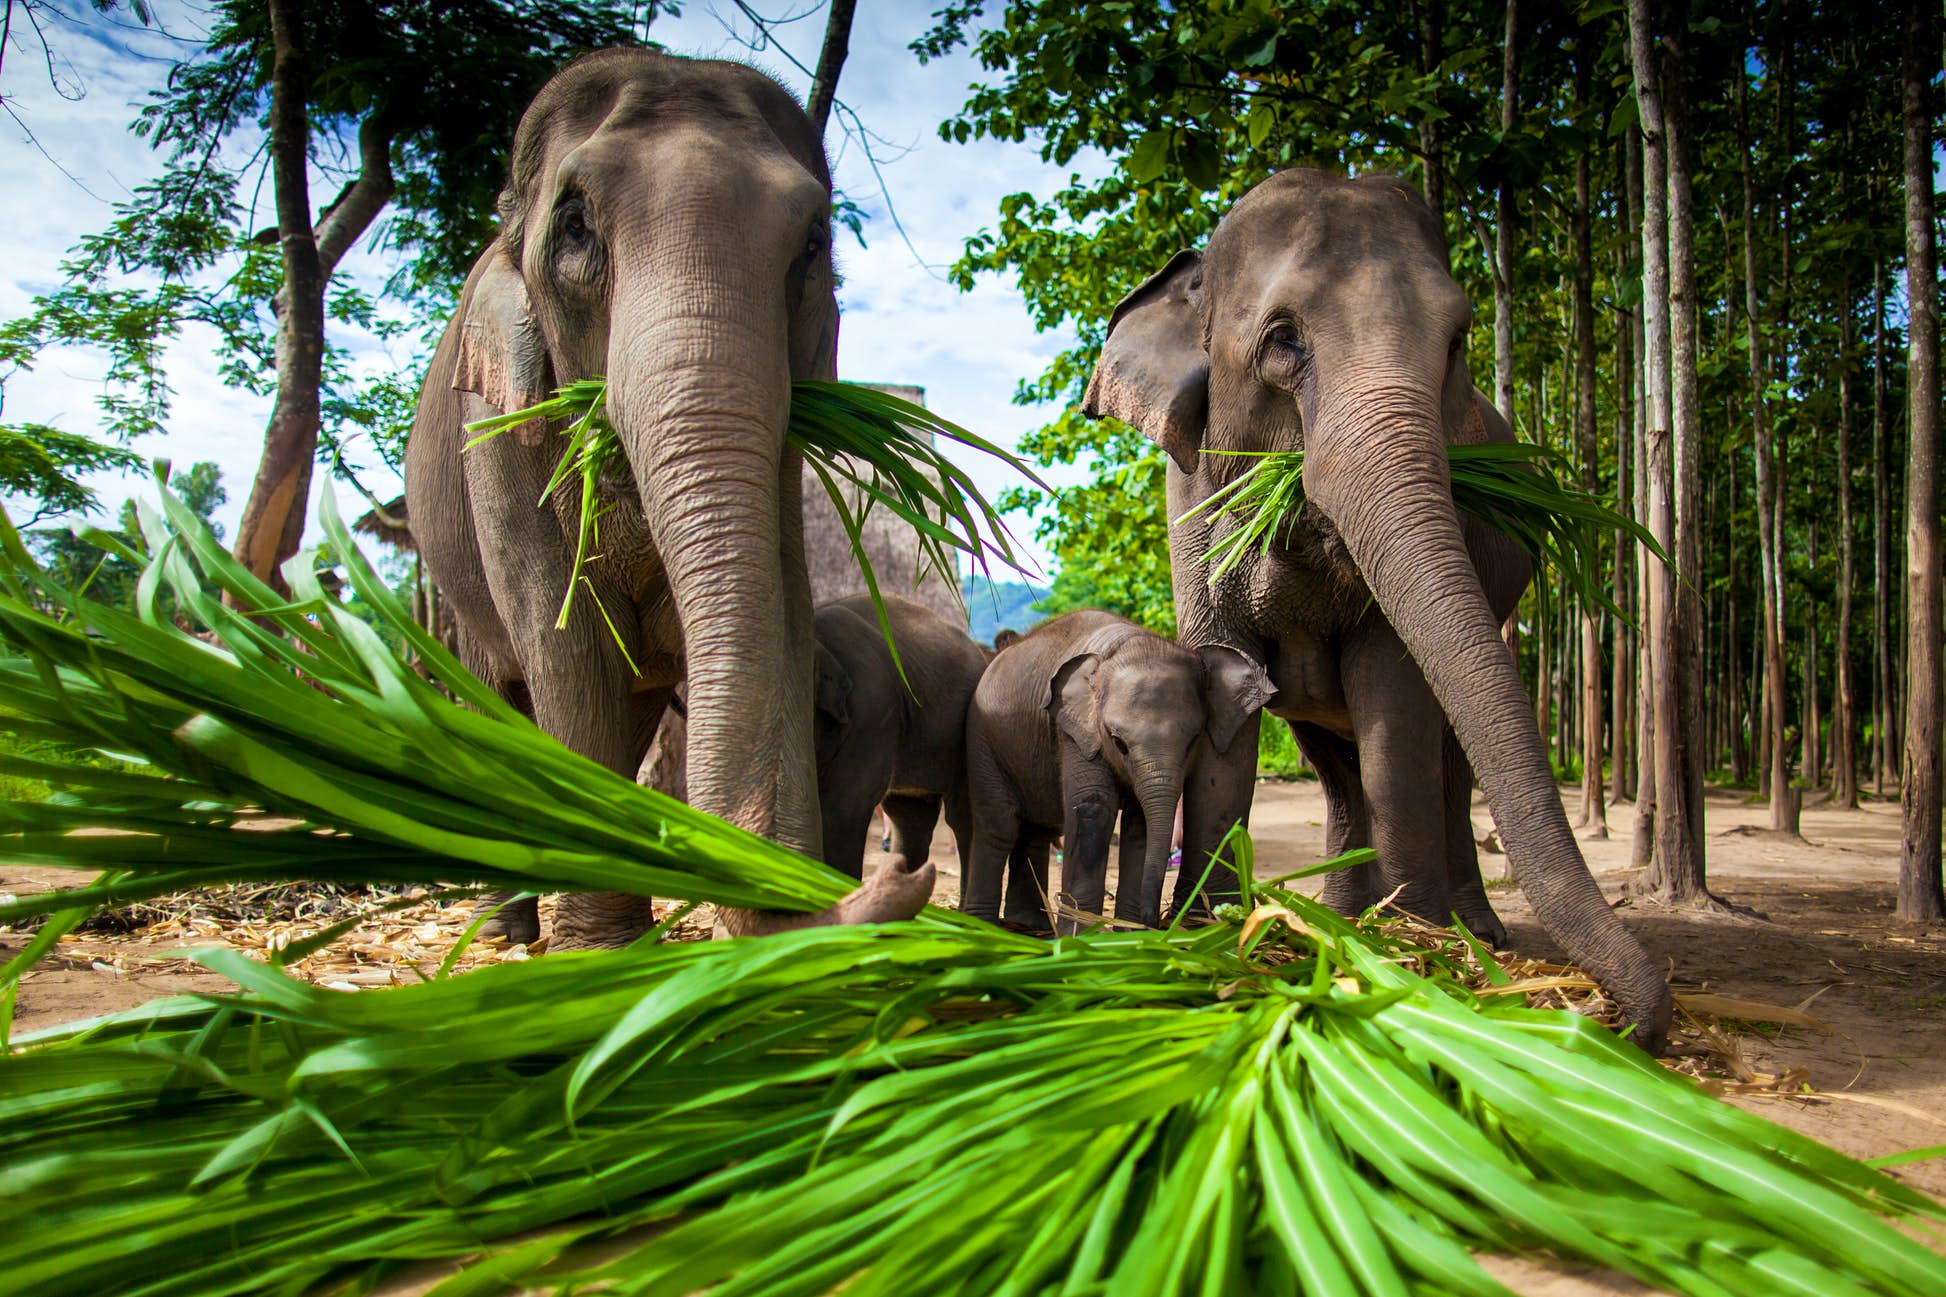 Adult and baby elephants eating sugar cane in Chiang Mai ©hangingpixels/Shutterstock